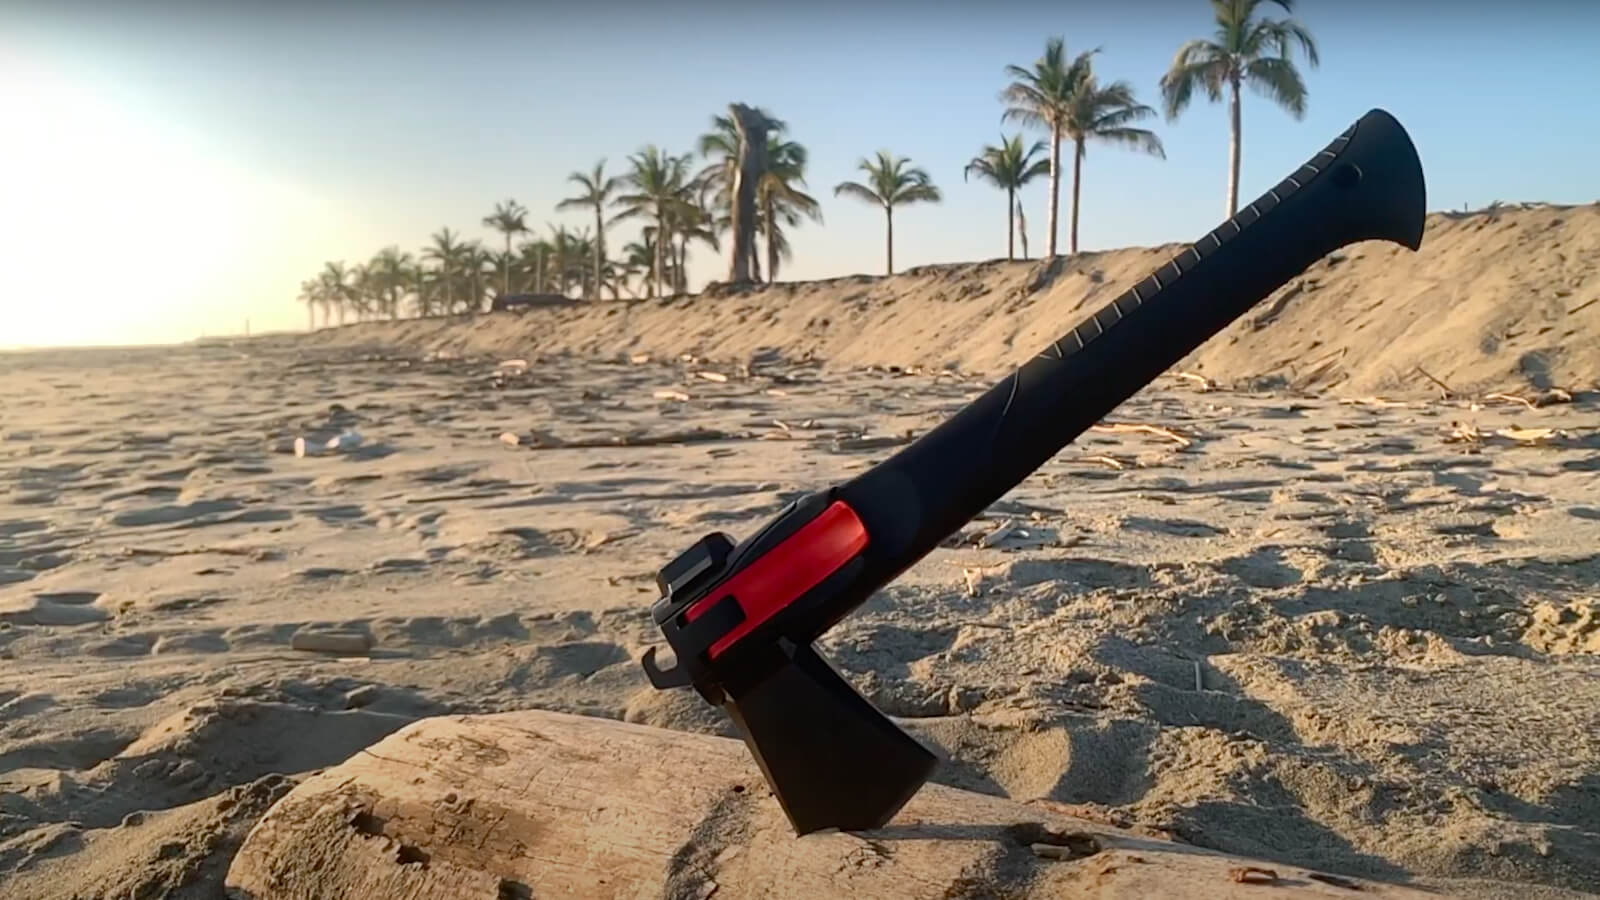 Adventure Mate AM-V2 5-in-1 Camping Tool configures into multiple designs